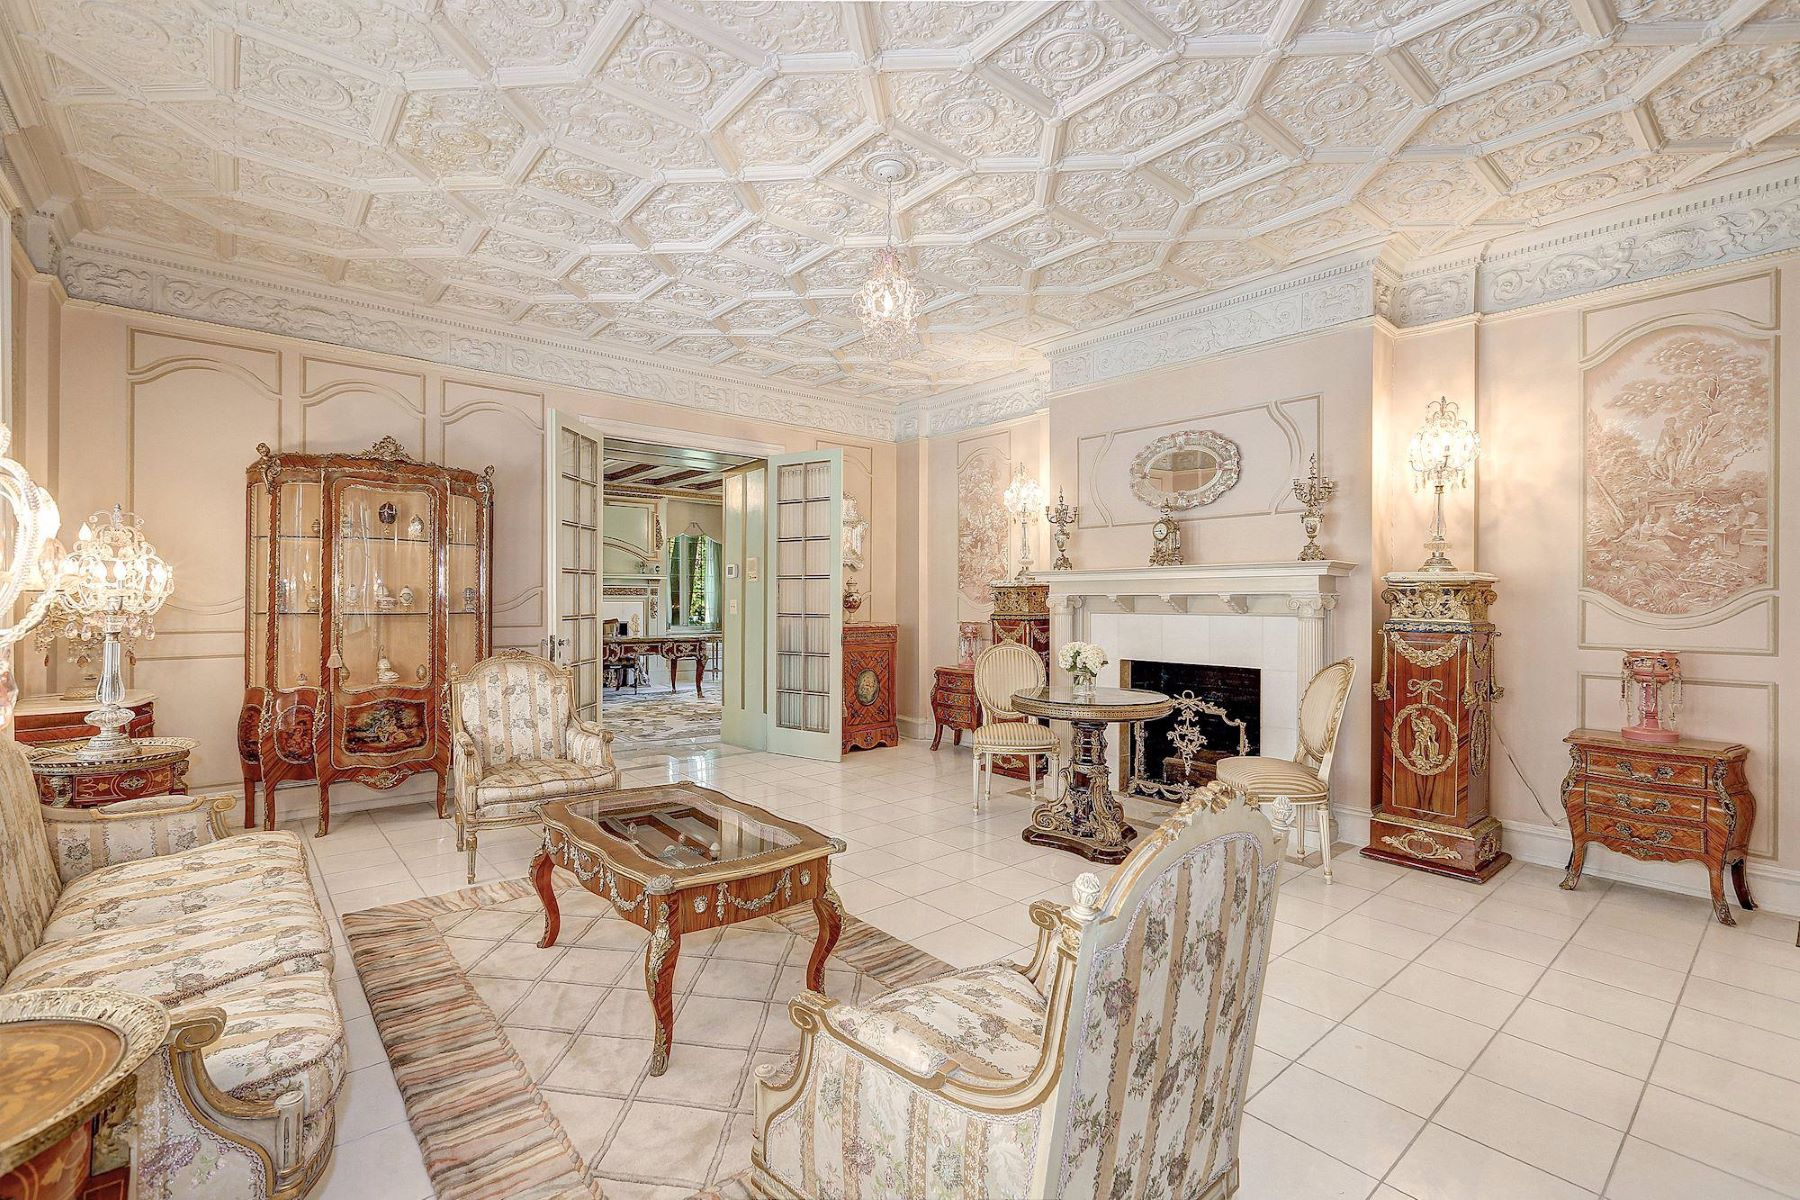 Additional photo for property listing at 9 Chevy Chase Cir Chevy Chase, Maryland 20815 United States